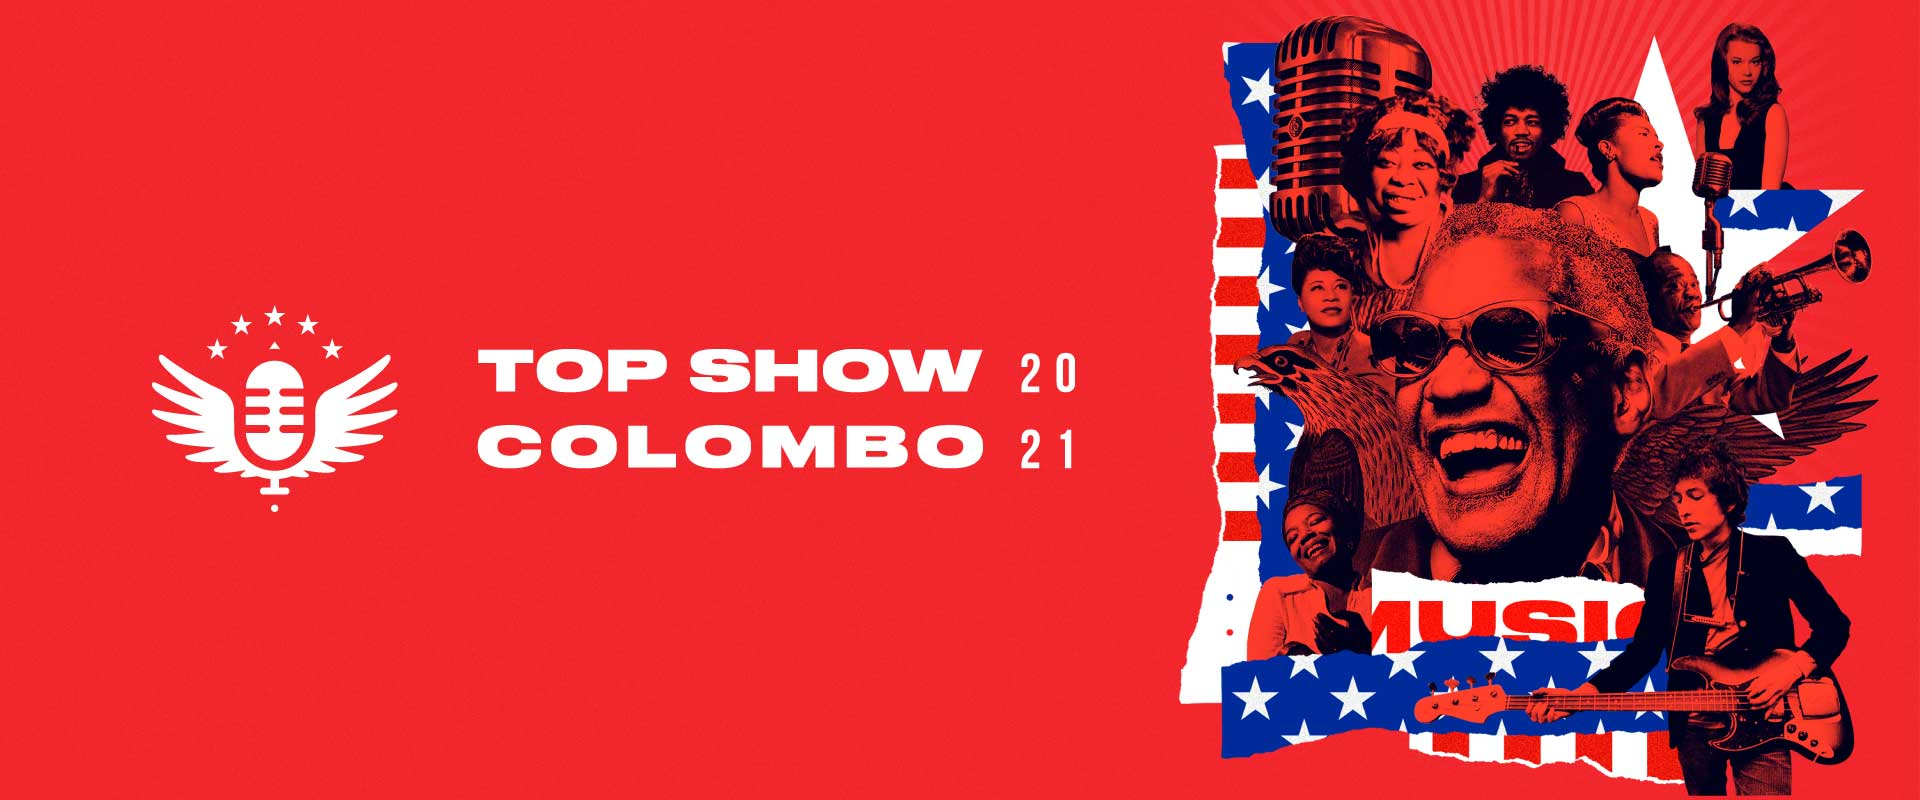 TopShowColombo